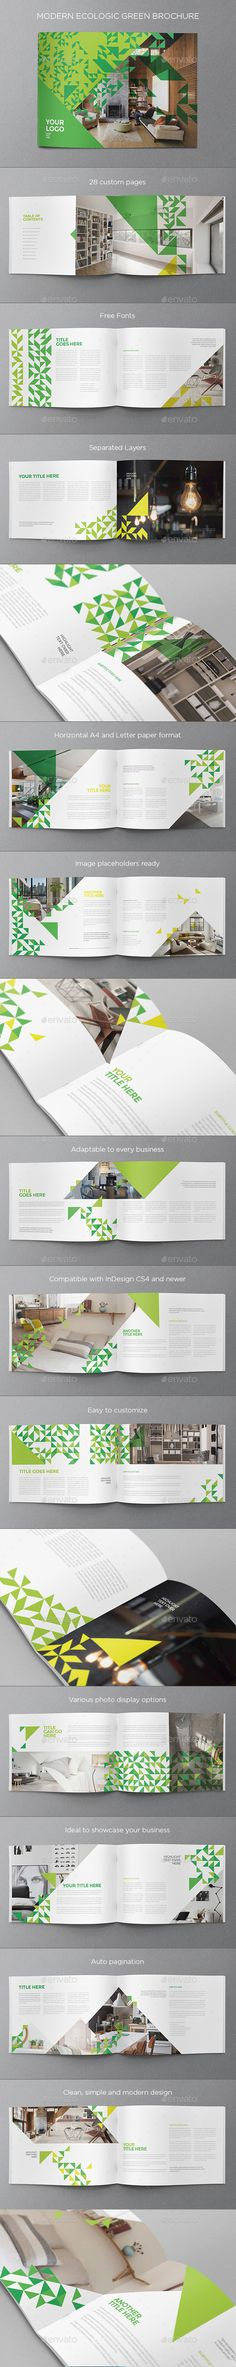 Clean, Modern and Simple Design Ecologic Green Brochure Template InDesign INDD. Id Design, Book Design, Layout Design, Company Profile Design, Ecology Design, Eco City, Graphic Design Brochure, Folder Design, Portfolio Design